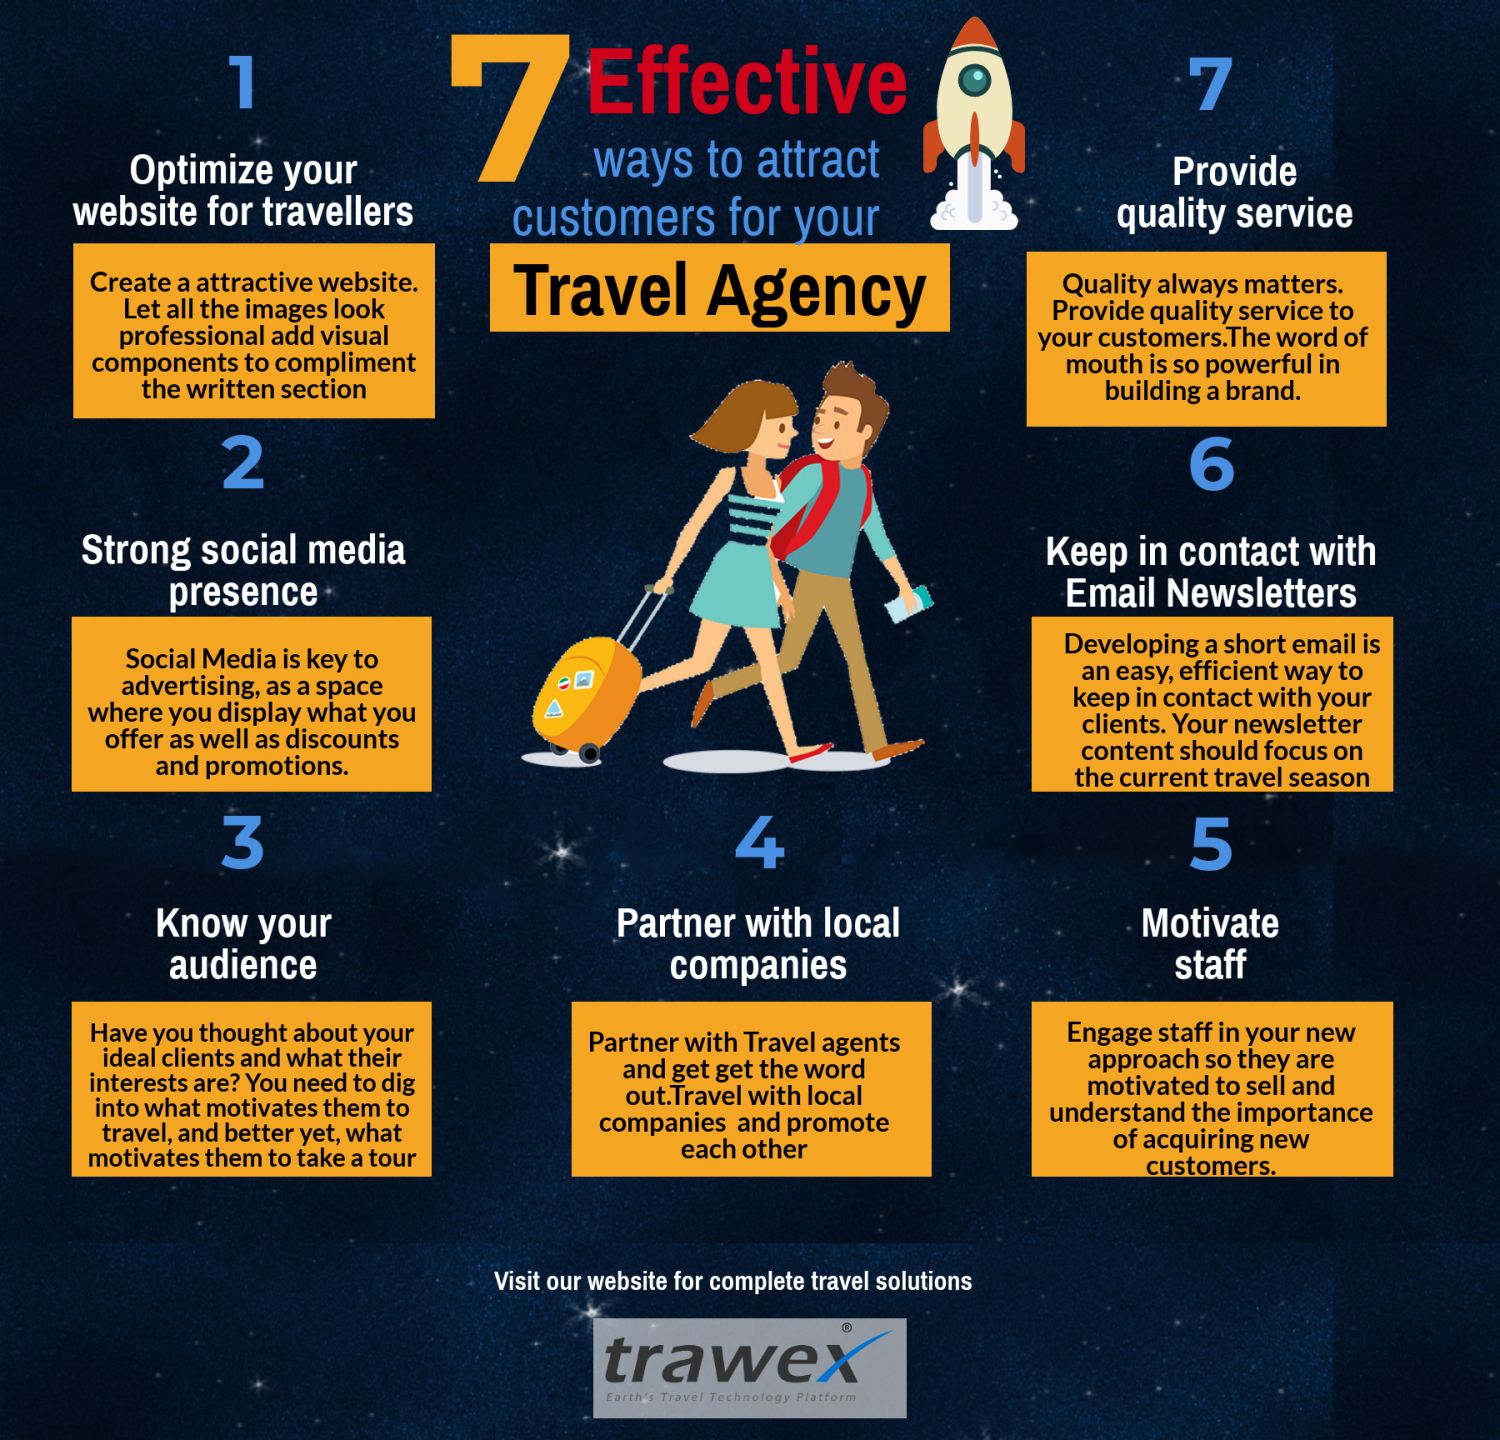 7 effective ways to attract customers for your travel agency Infographic